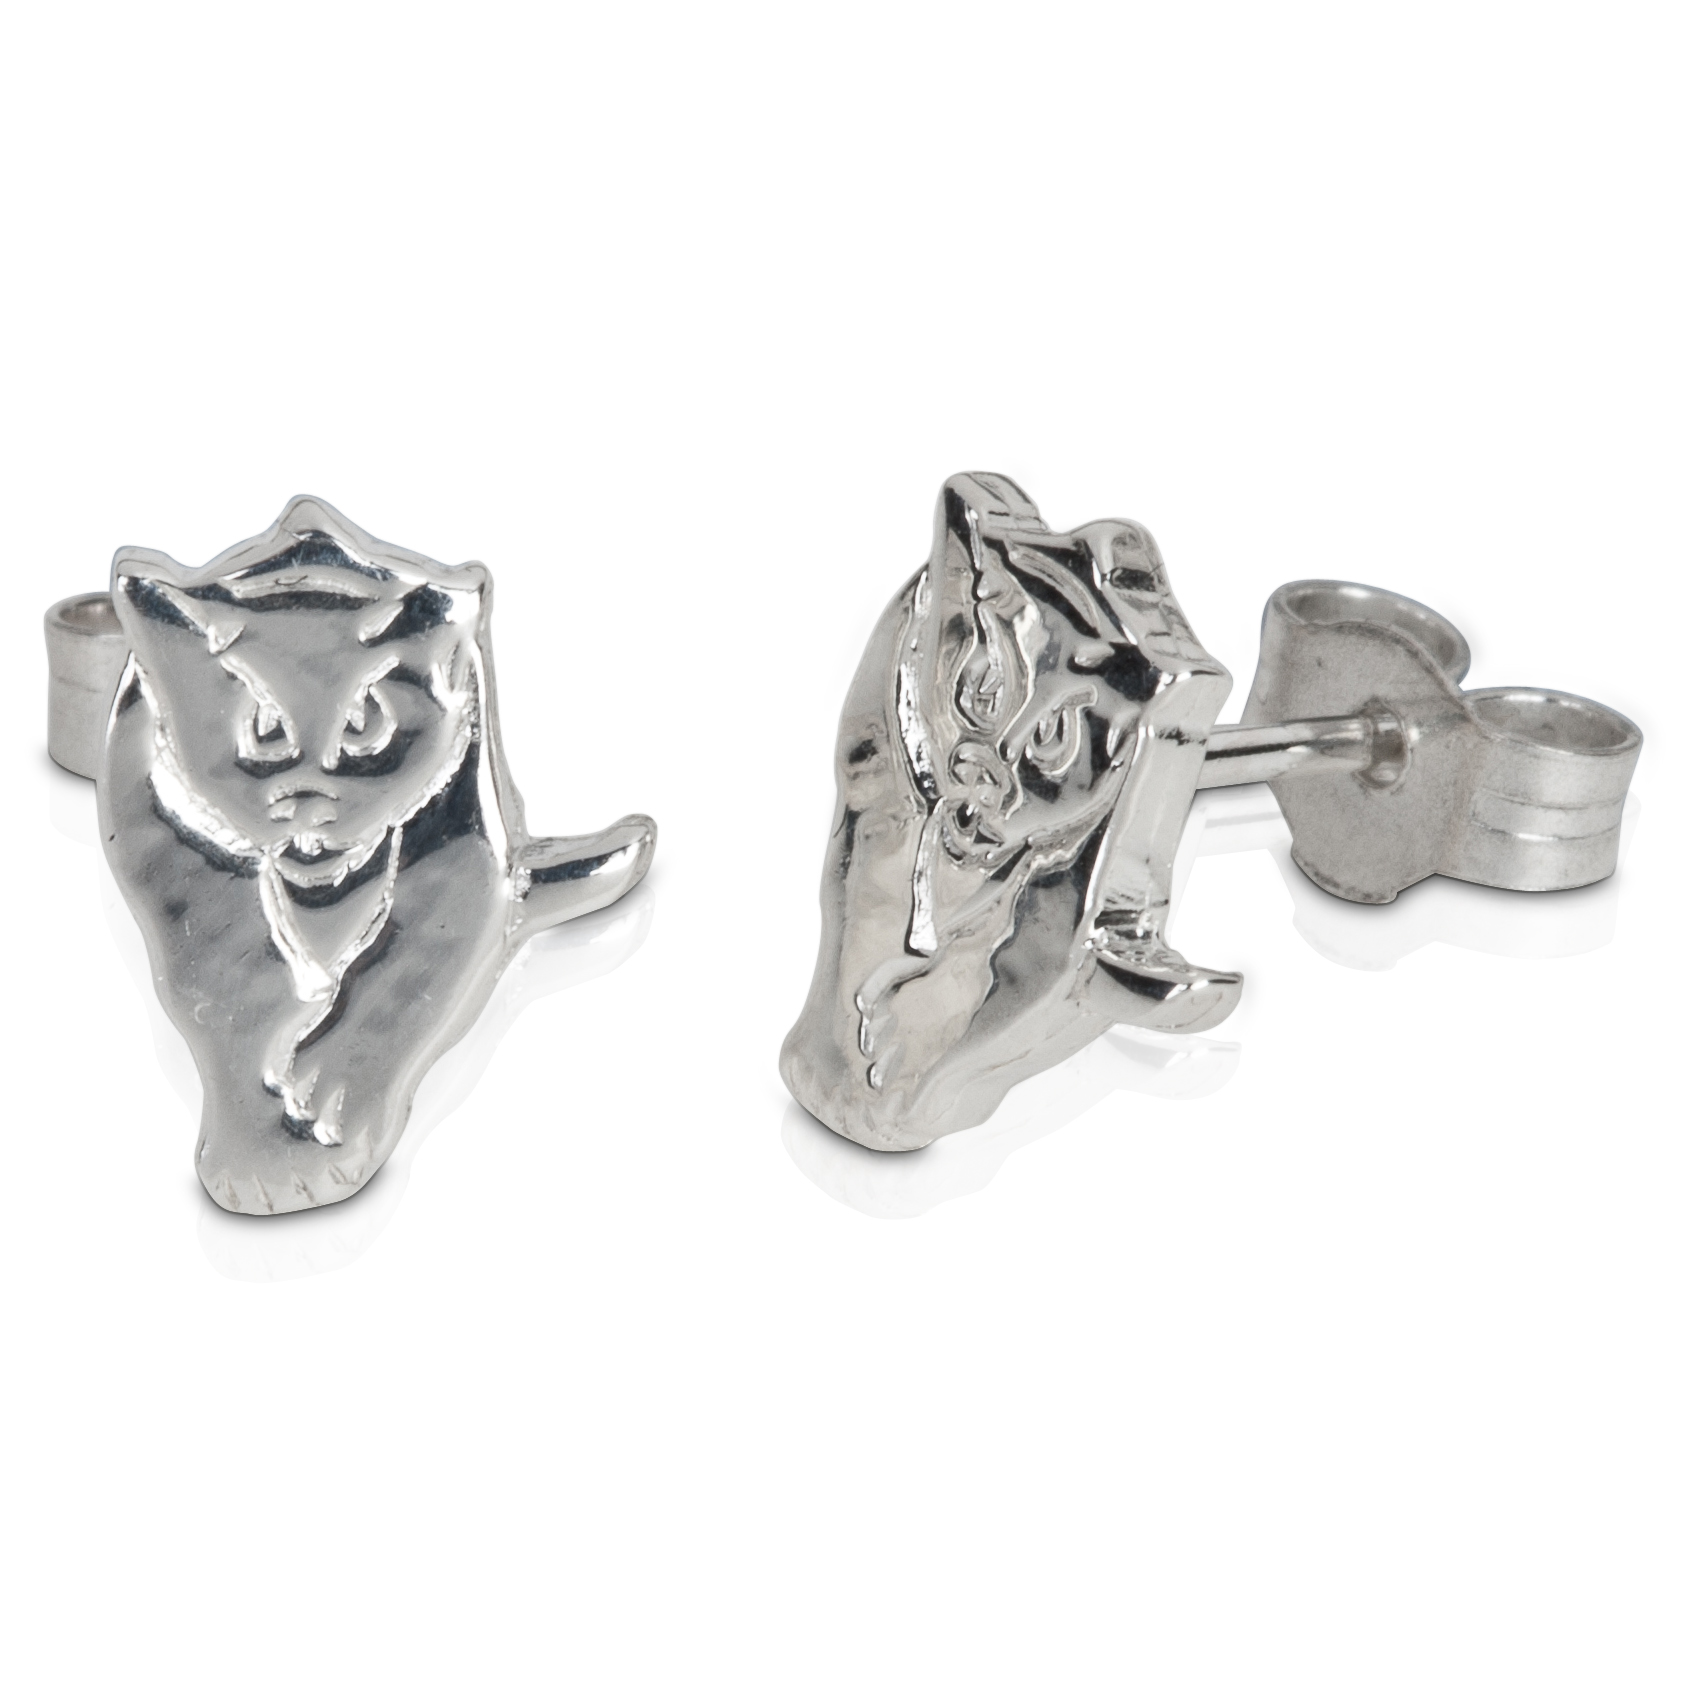 Sunderland Black Cat Stud Earring - Pair - Sterling Silver